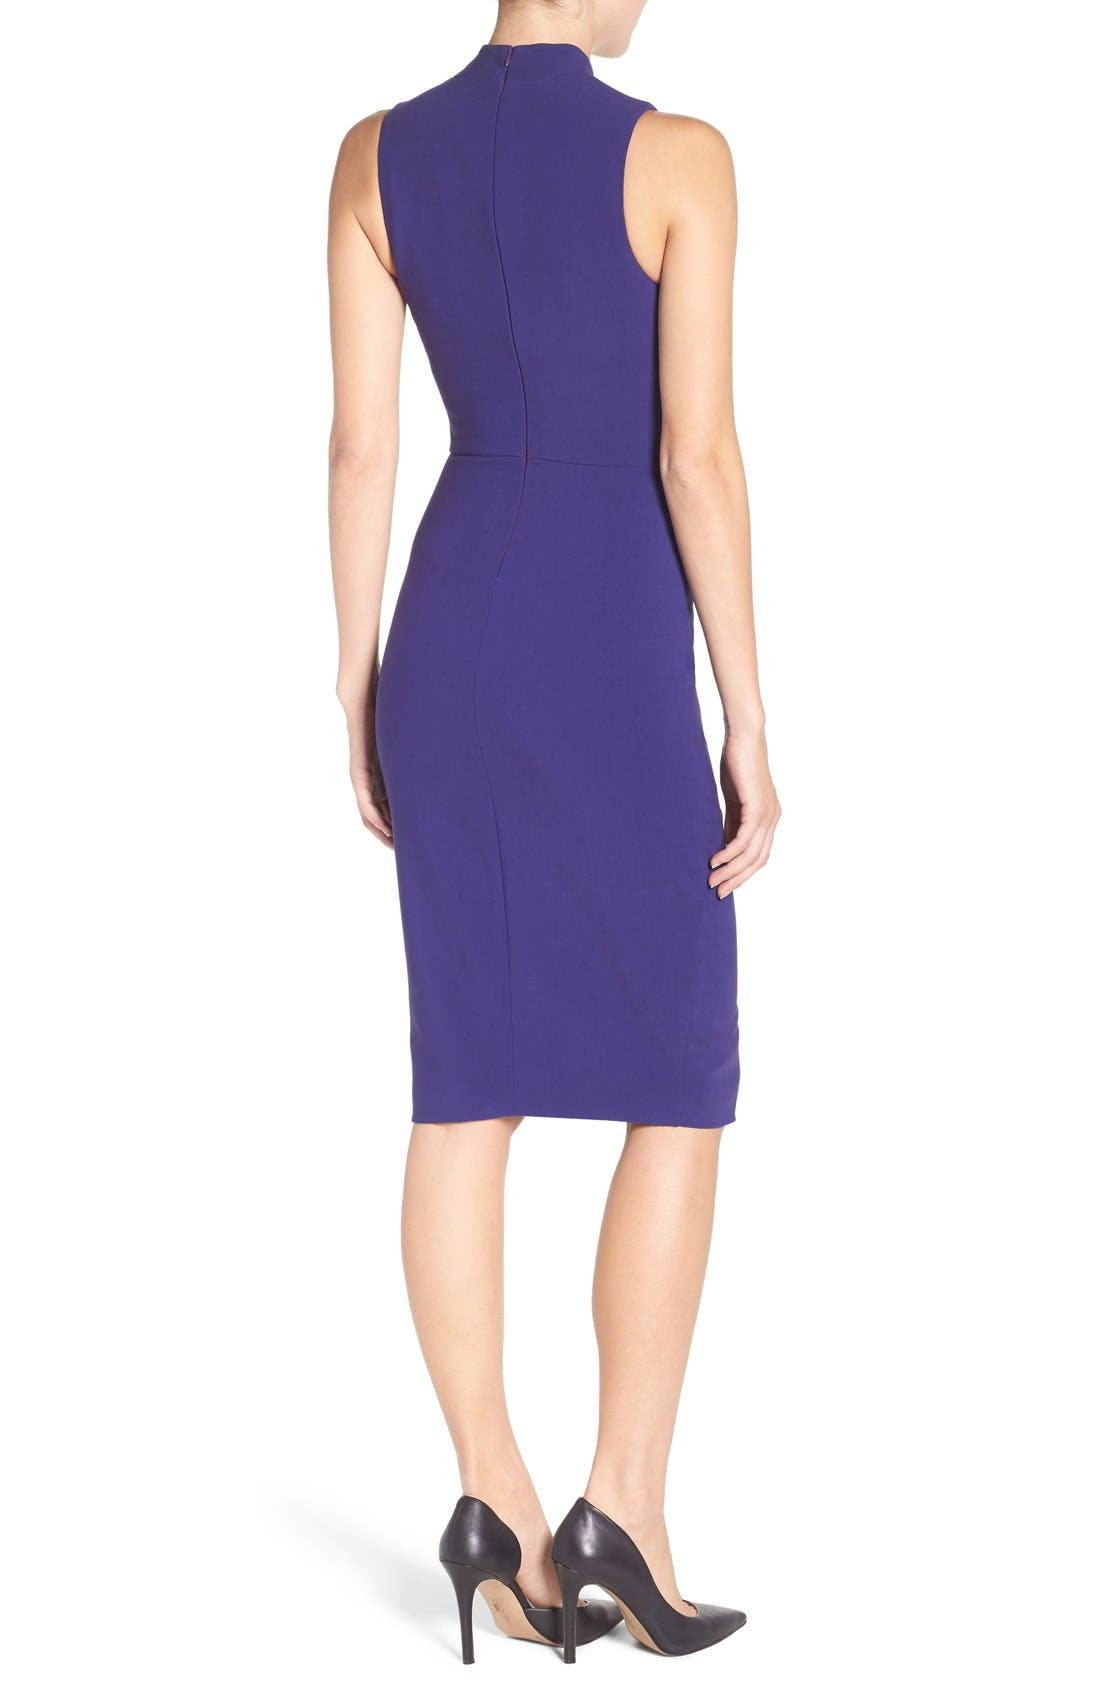 'Caldwell' Mock Neck Sheath Dress,                             Alternate thumbnail 5, color,                             533